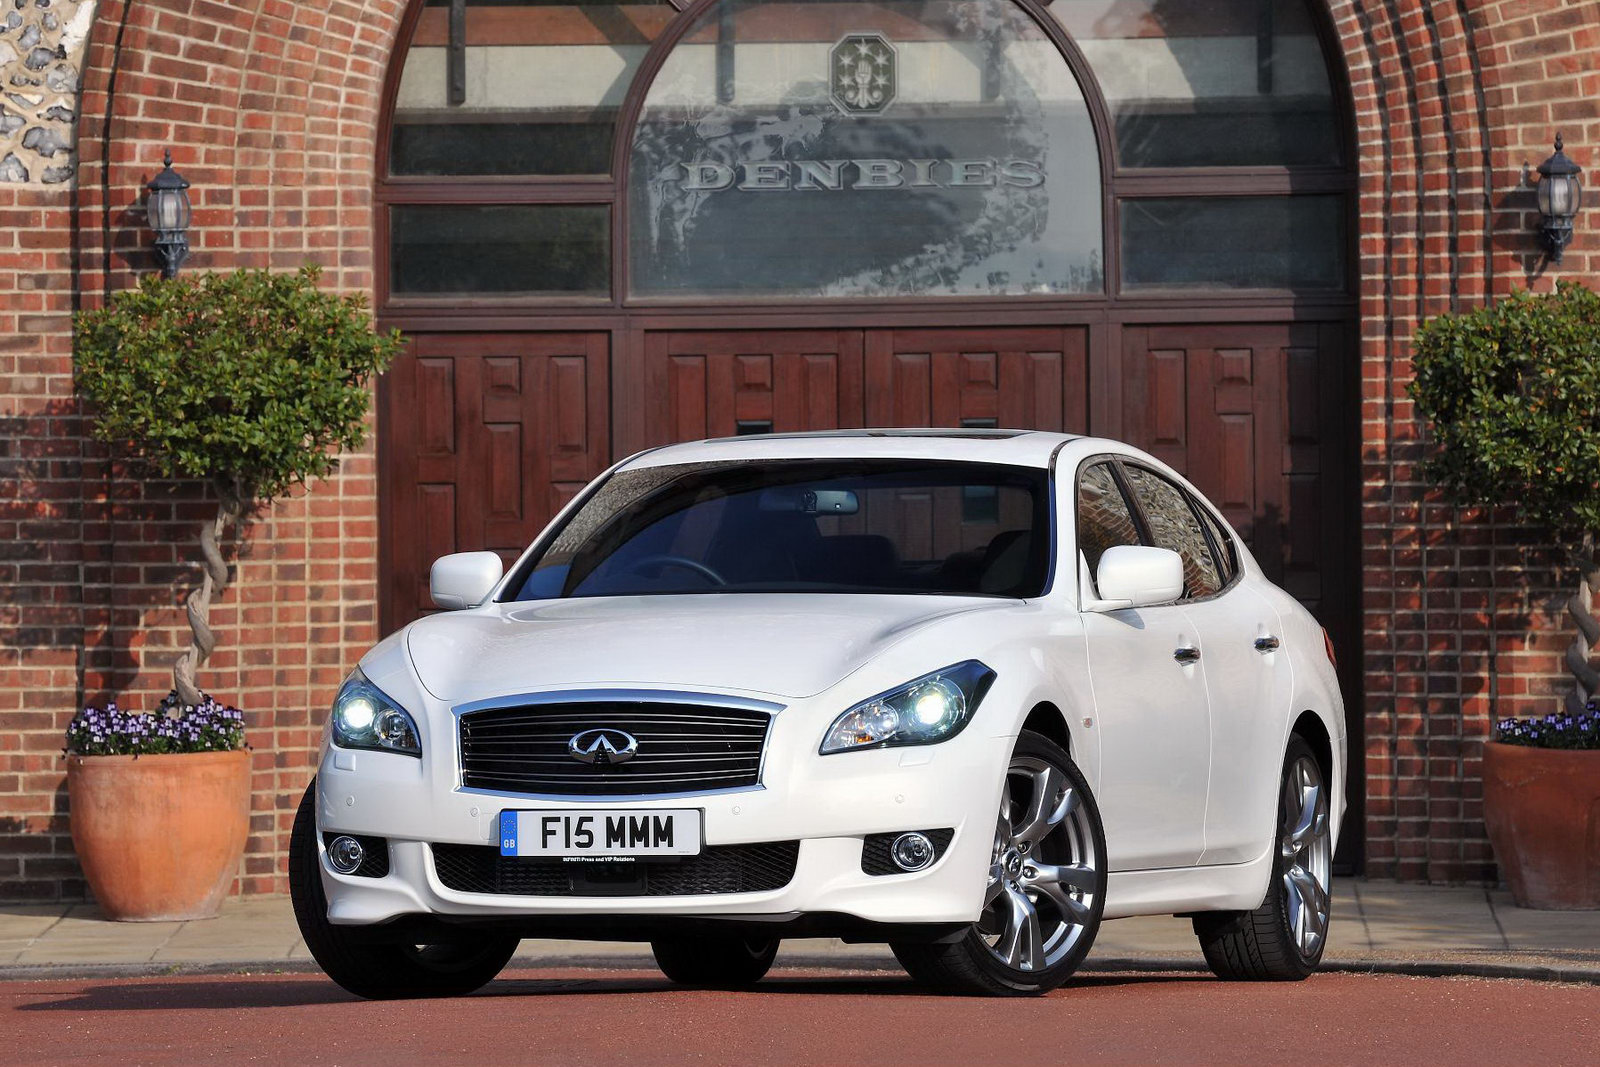 Infiniti prices new m37 saloon from 35150 in the uk vanachro Image collections